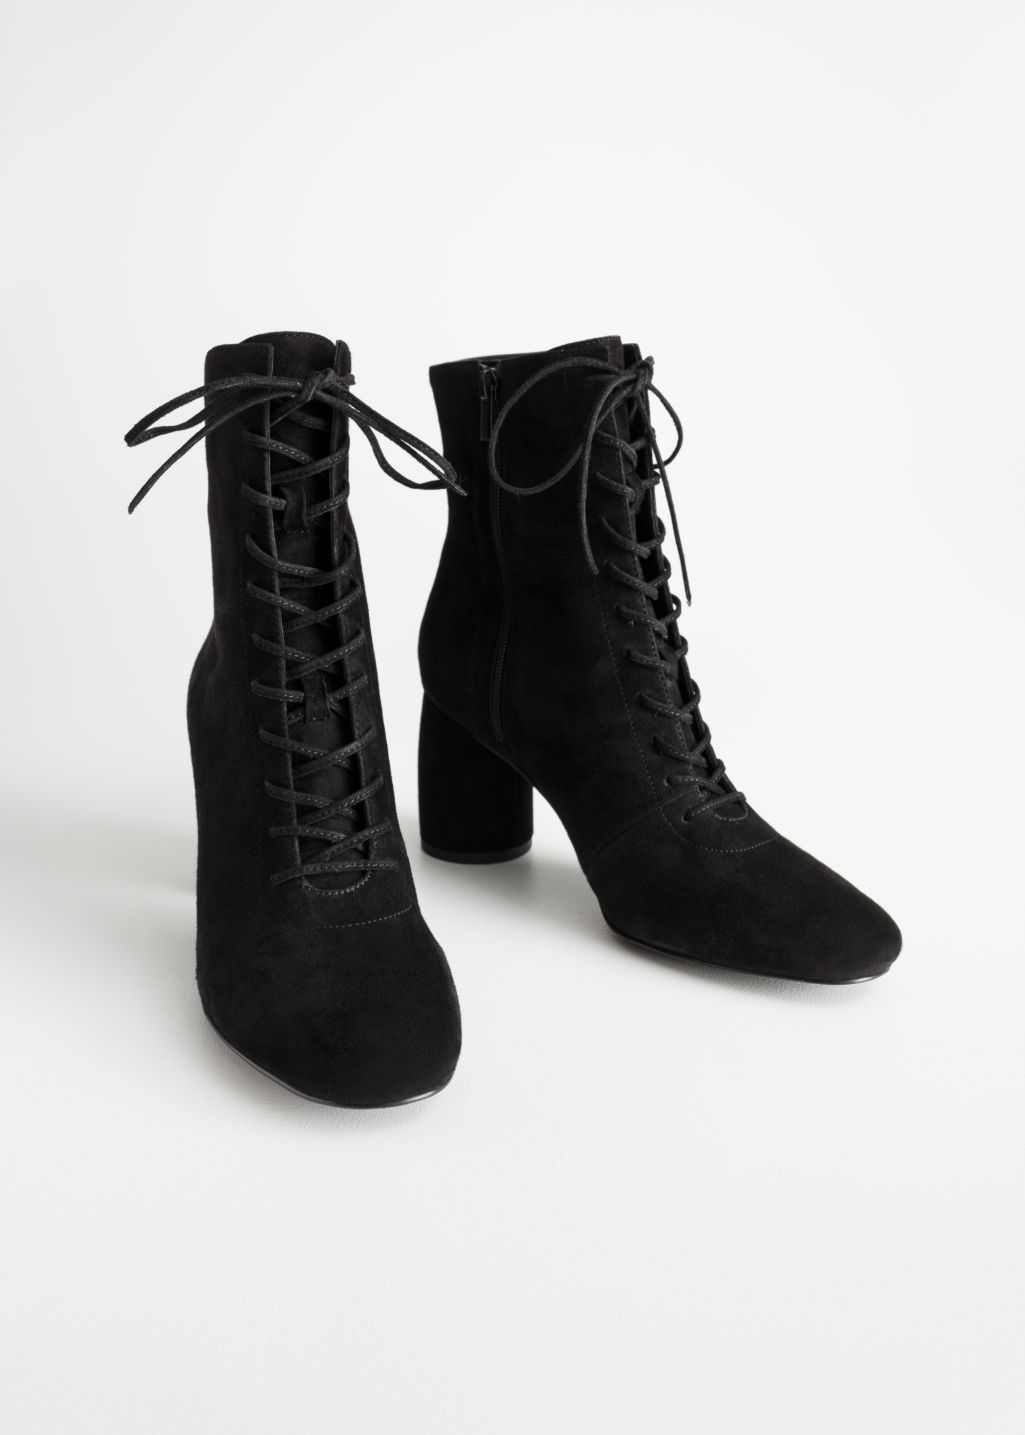 Boots, Lace up ankle boots, Suede boots